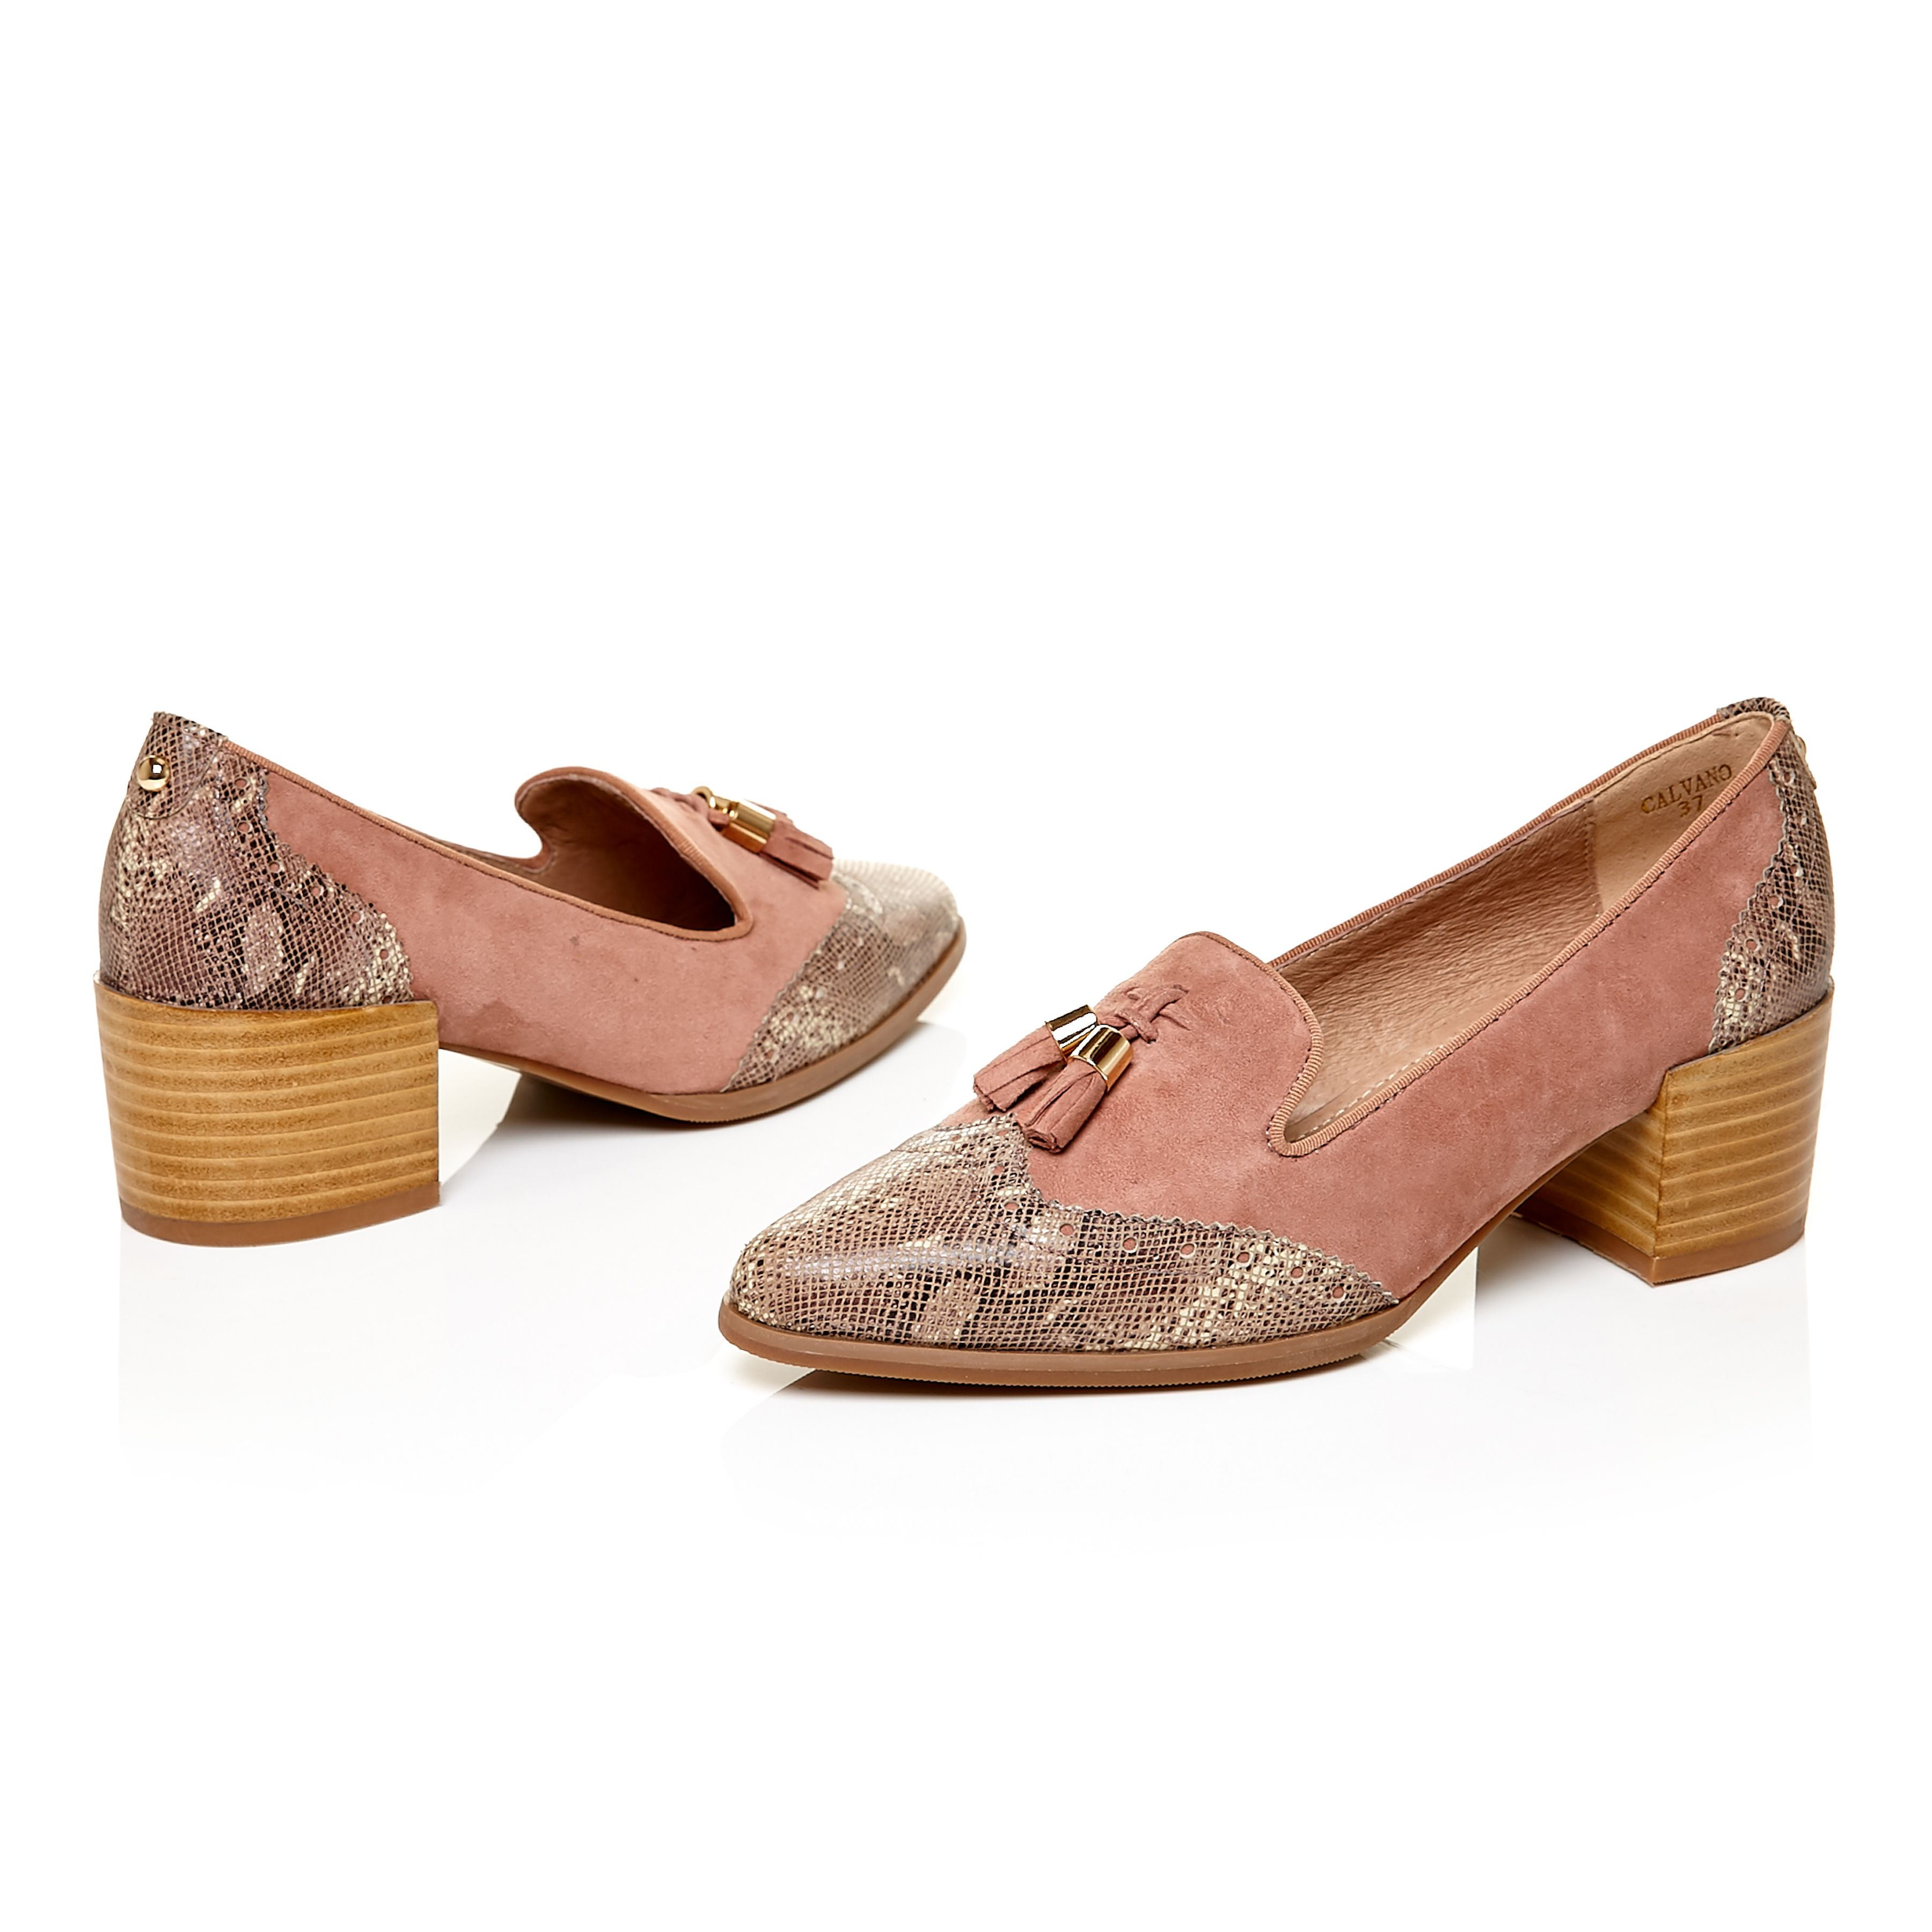 42b37cc6b2fb Calvano  Blush suede pointed tassel snakeskin effect leather block heel  loafers http